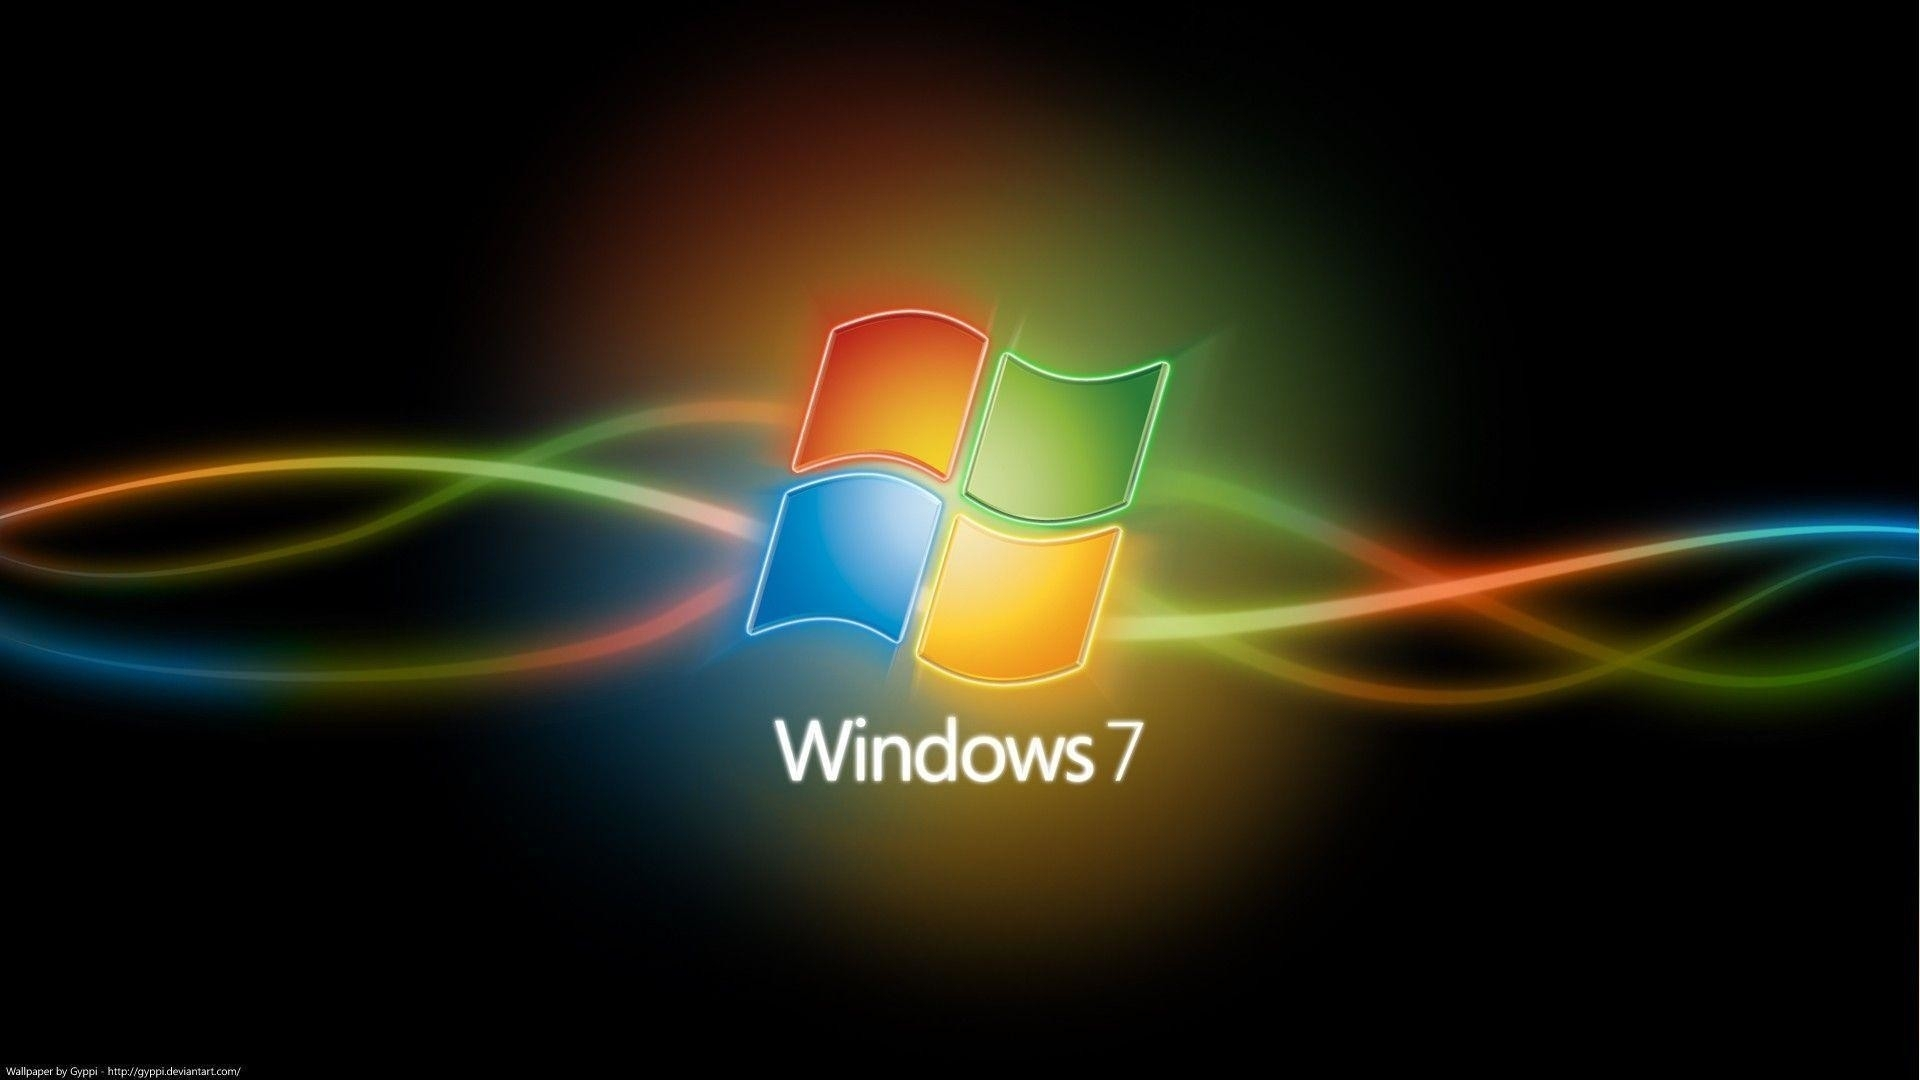 gif background windows 7 ·①